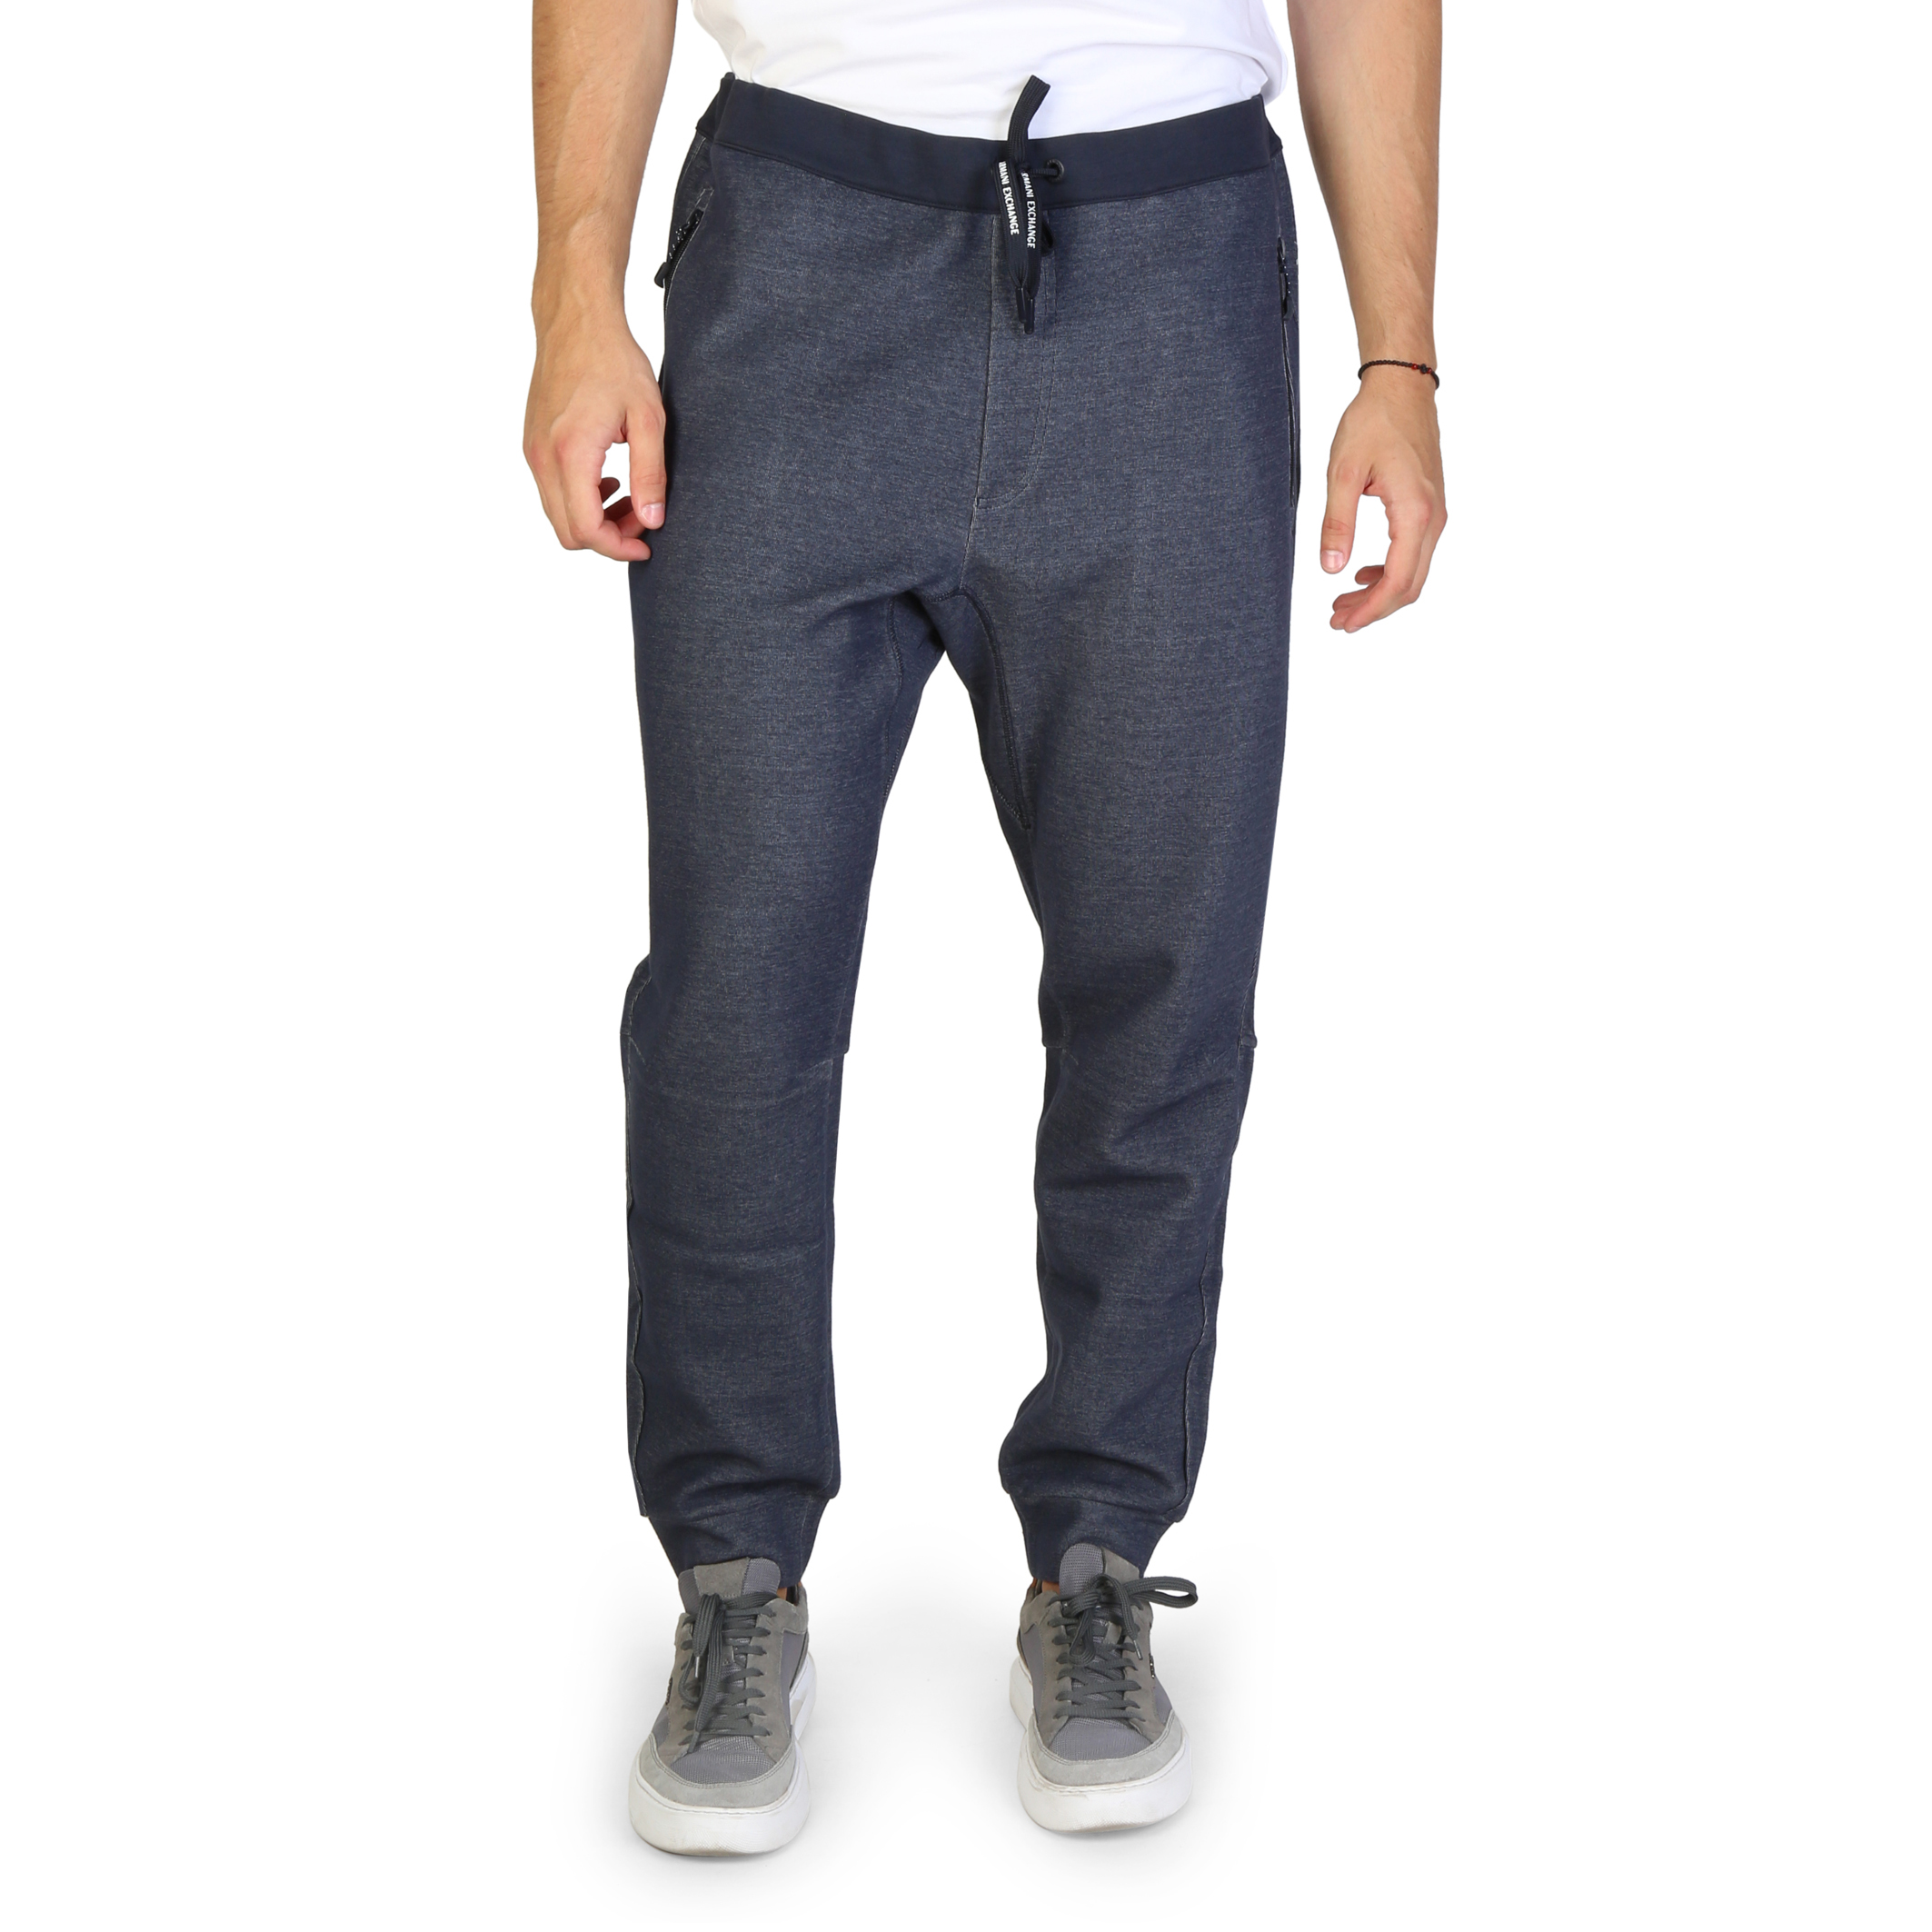 Pantalon de jogging Armani Exchange – 8NZP72ZJQ2Z